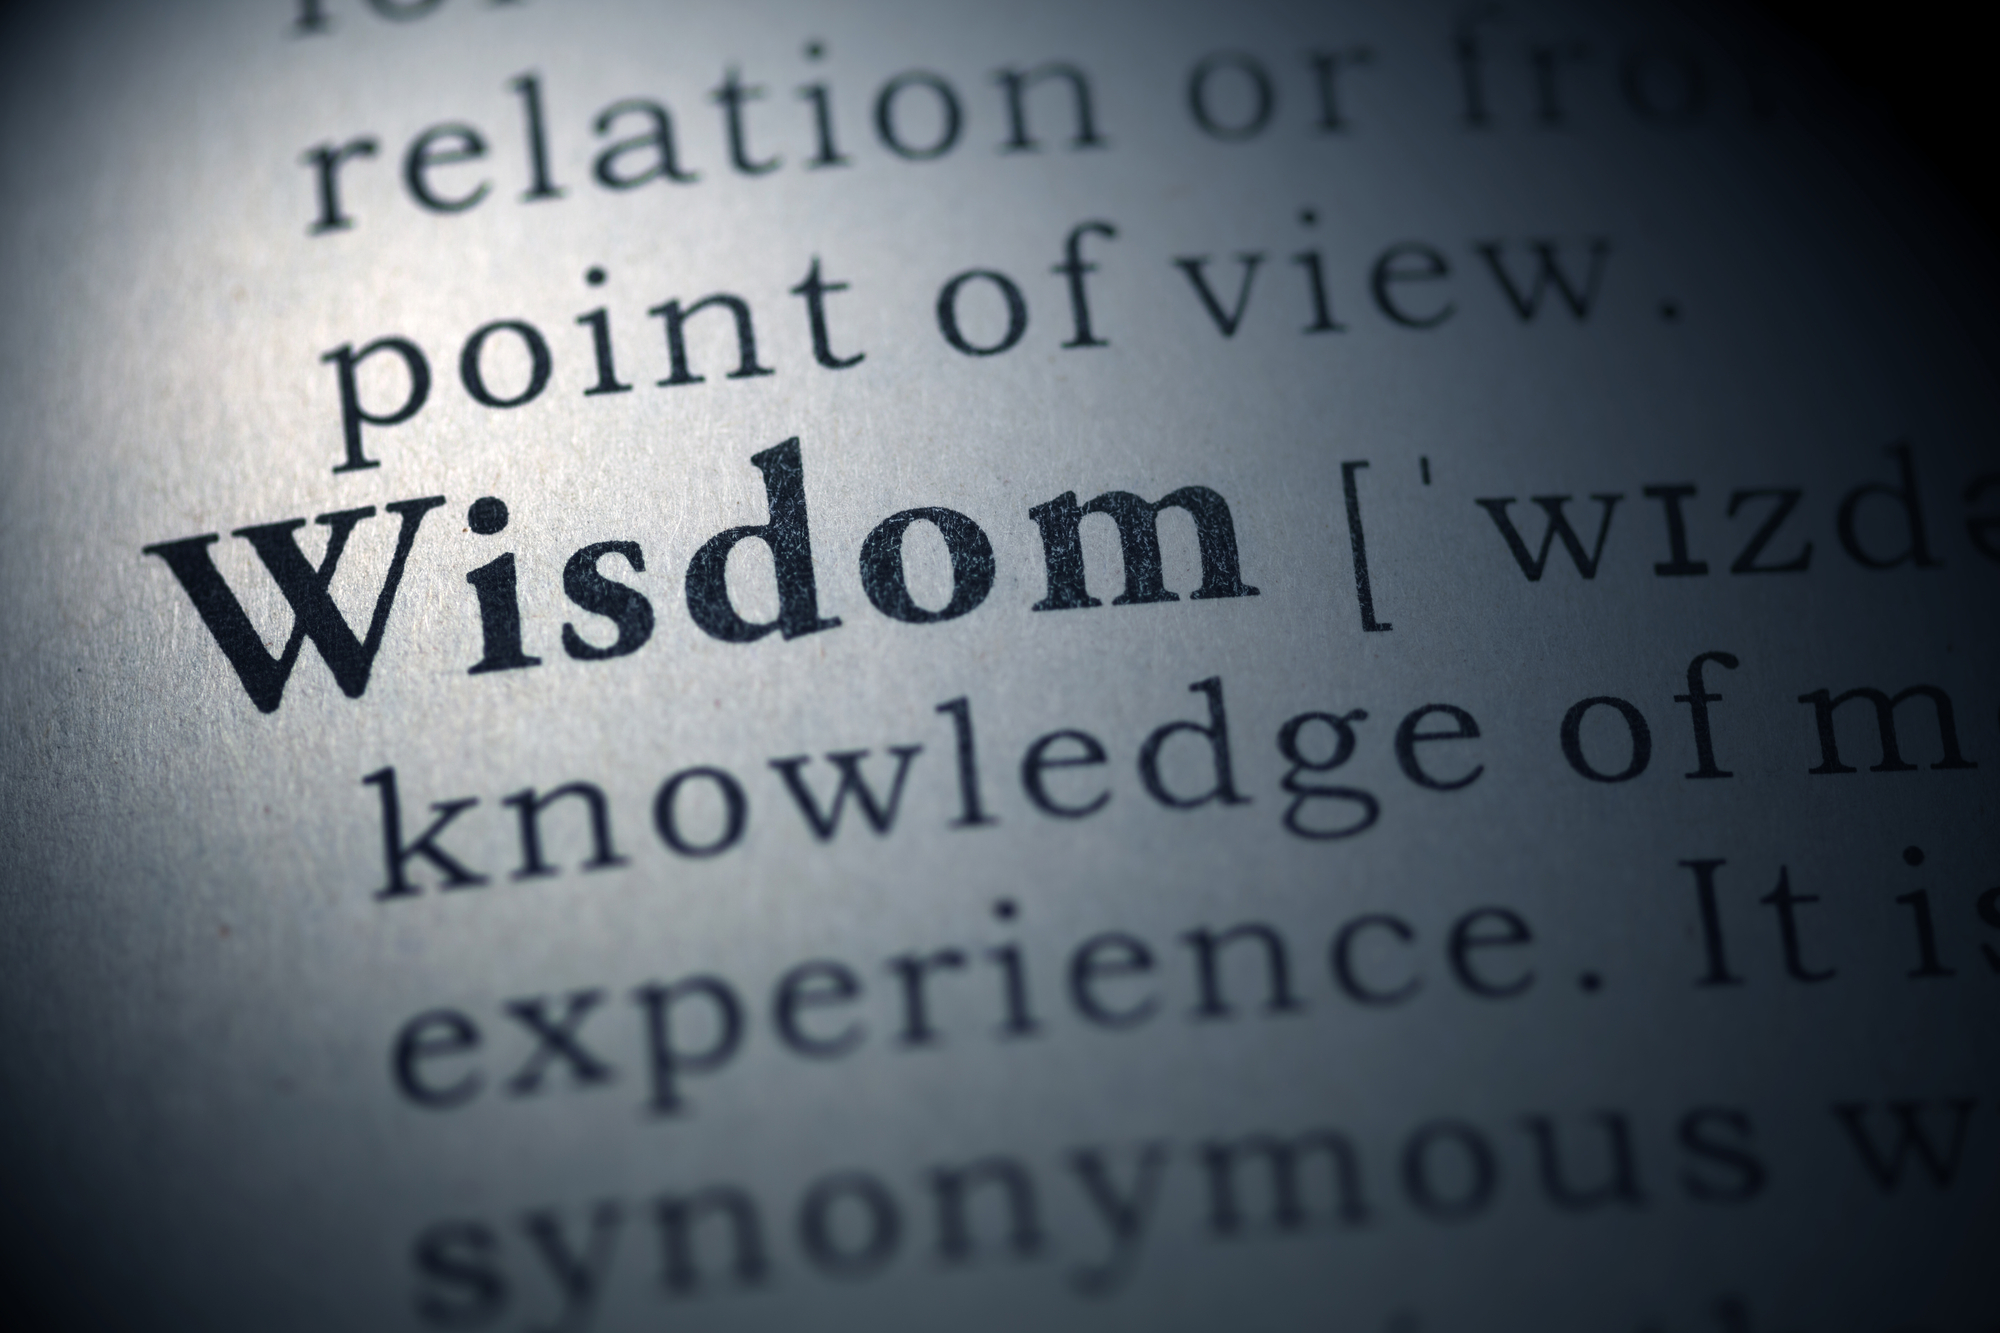 To show a list of wisdom insights can help build resilience